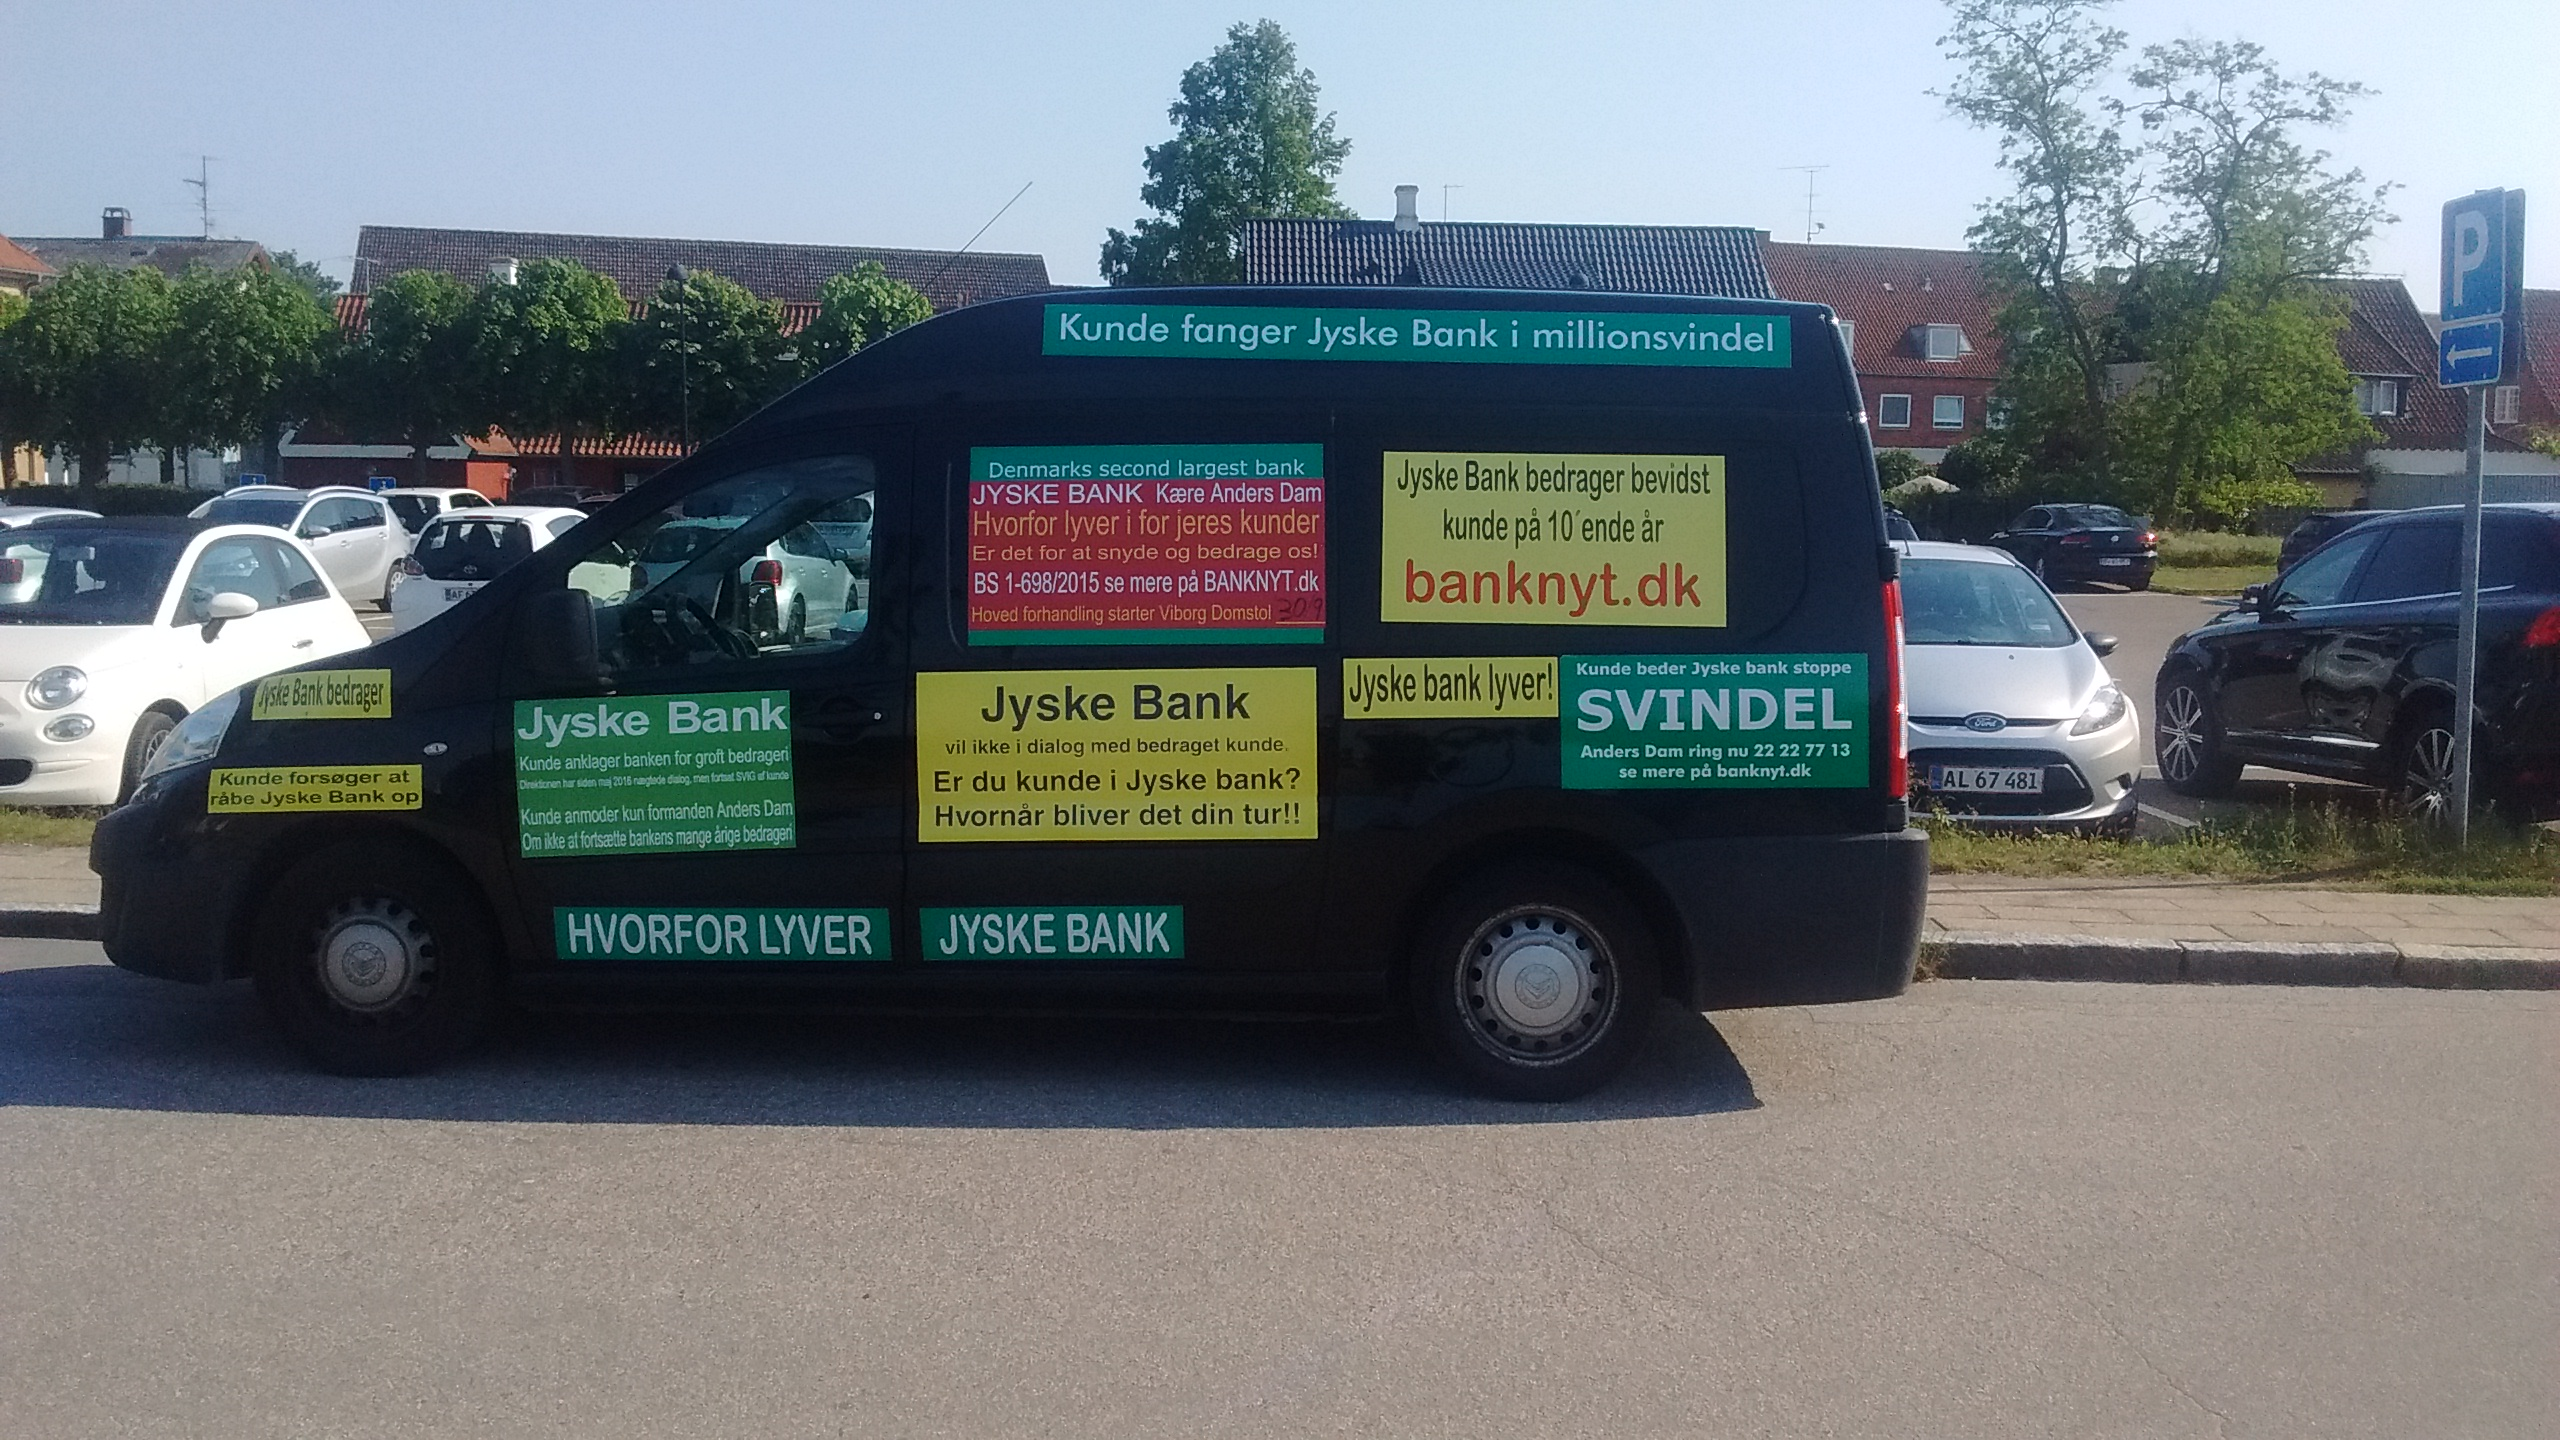 When Danish banks deceive their customers. The customer is usually the small one But make no mistake about the size. Customer gives the entire board a slap, in i cortroom 30/9-2019 BS 1-698/2015 / Jyske Bank Board Member Philip Baruch wrote May 31, 2016. That the bank, is informed that the customer has reported JYSKE BANK to the police, for, among other things, fraud And that the group management, took such notice with serenity Meanwhile, the members of the group management, continue to support whether Jyske Bank's continued fraud thus the customer continues to be exposed to the bank's million fraud to this day. A case that is being negotiated on September 30 and October 1, 2019 in the City Court of Viborg. Fra Twitter med link til banknyt dk @Finansmin @Justisdep @Statsmin #Justitsministeriet #Statsministeriet #Finansministeriet #Finanstilsynet #Finance #stokes #banks #dkpol #Banking #NSA #FBI #Denmark #JyskeBank #DanskeBank #Nordea #Rådgivning #Sparnord #Jysk #JyskeBankBoxen